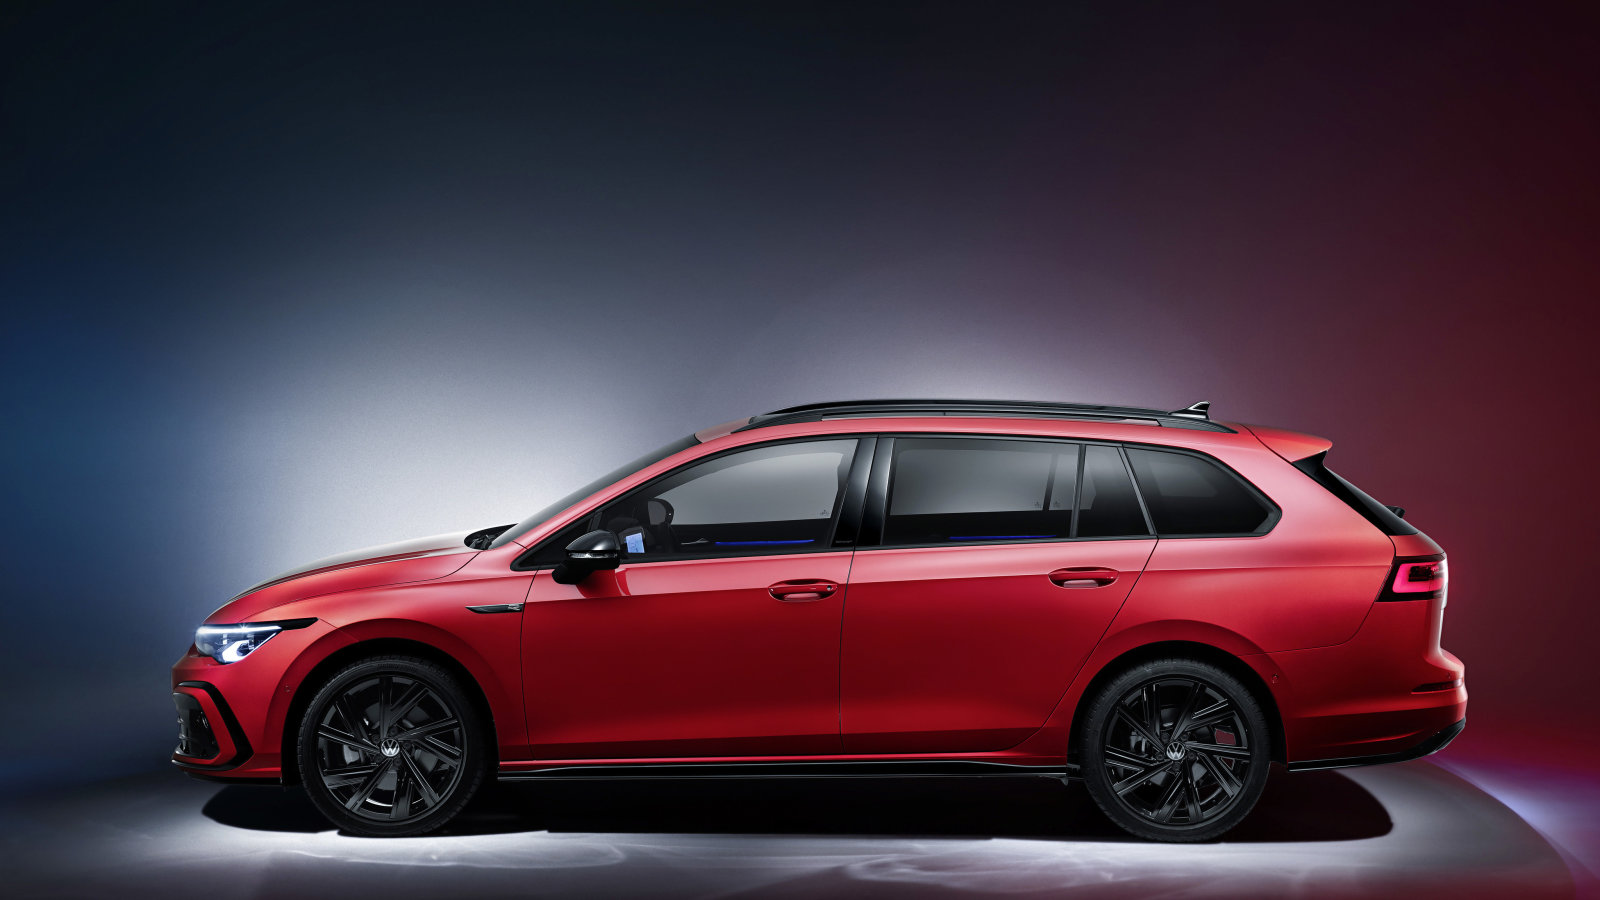 Volkswagen Golf Alternative as well as Alltrack disclosed, yet except the UNITED STATE